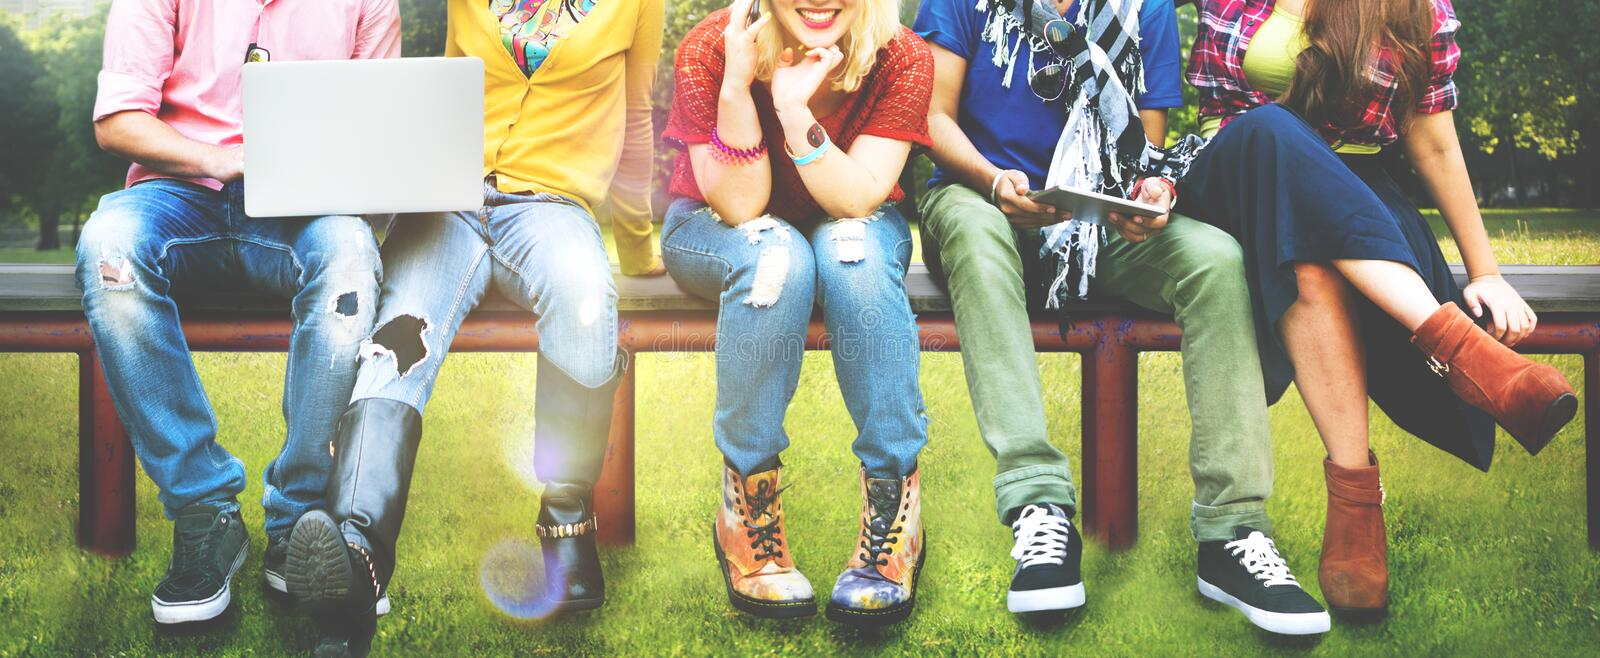 Teenagers Young Team Together Cheerful Concept stock image